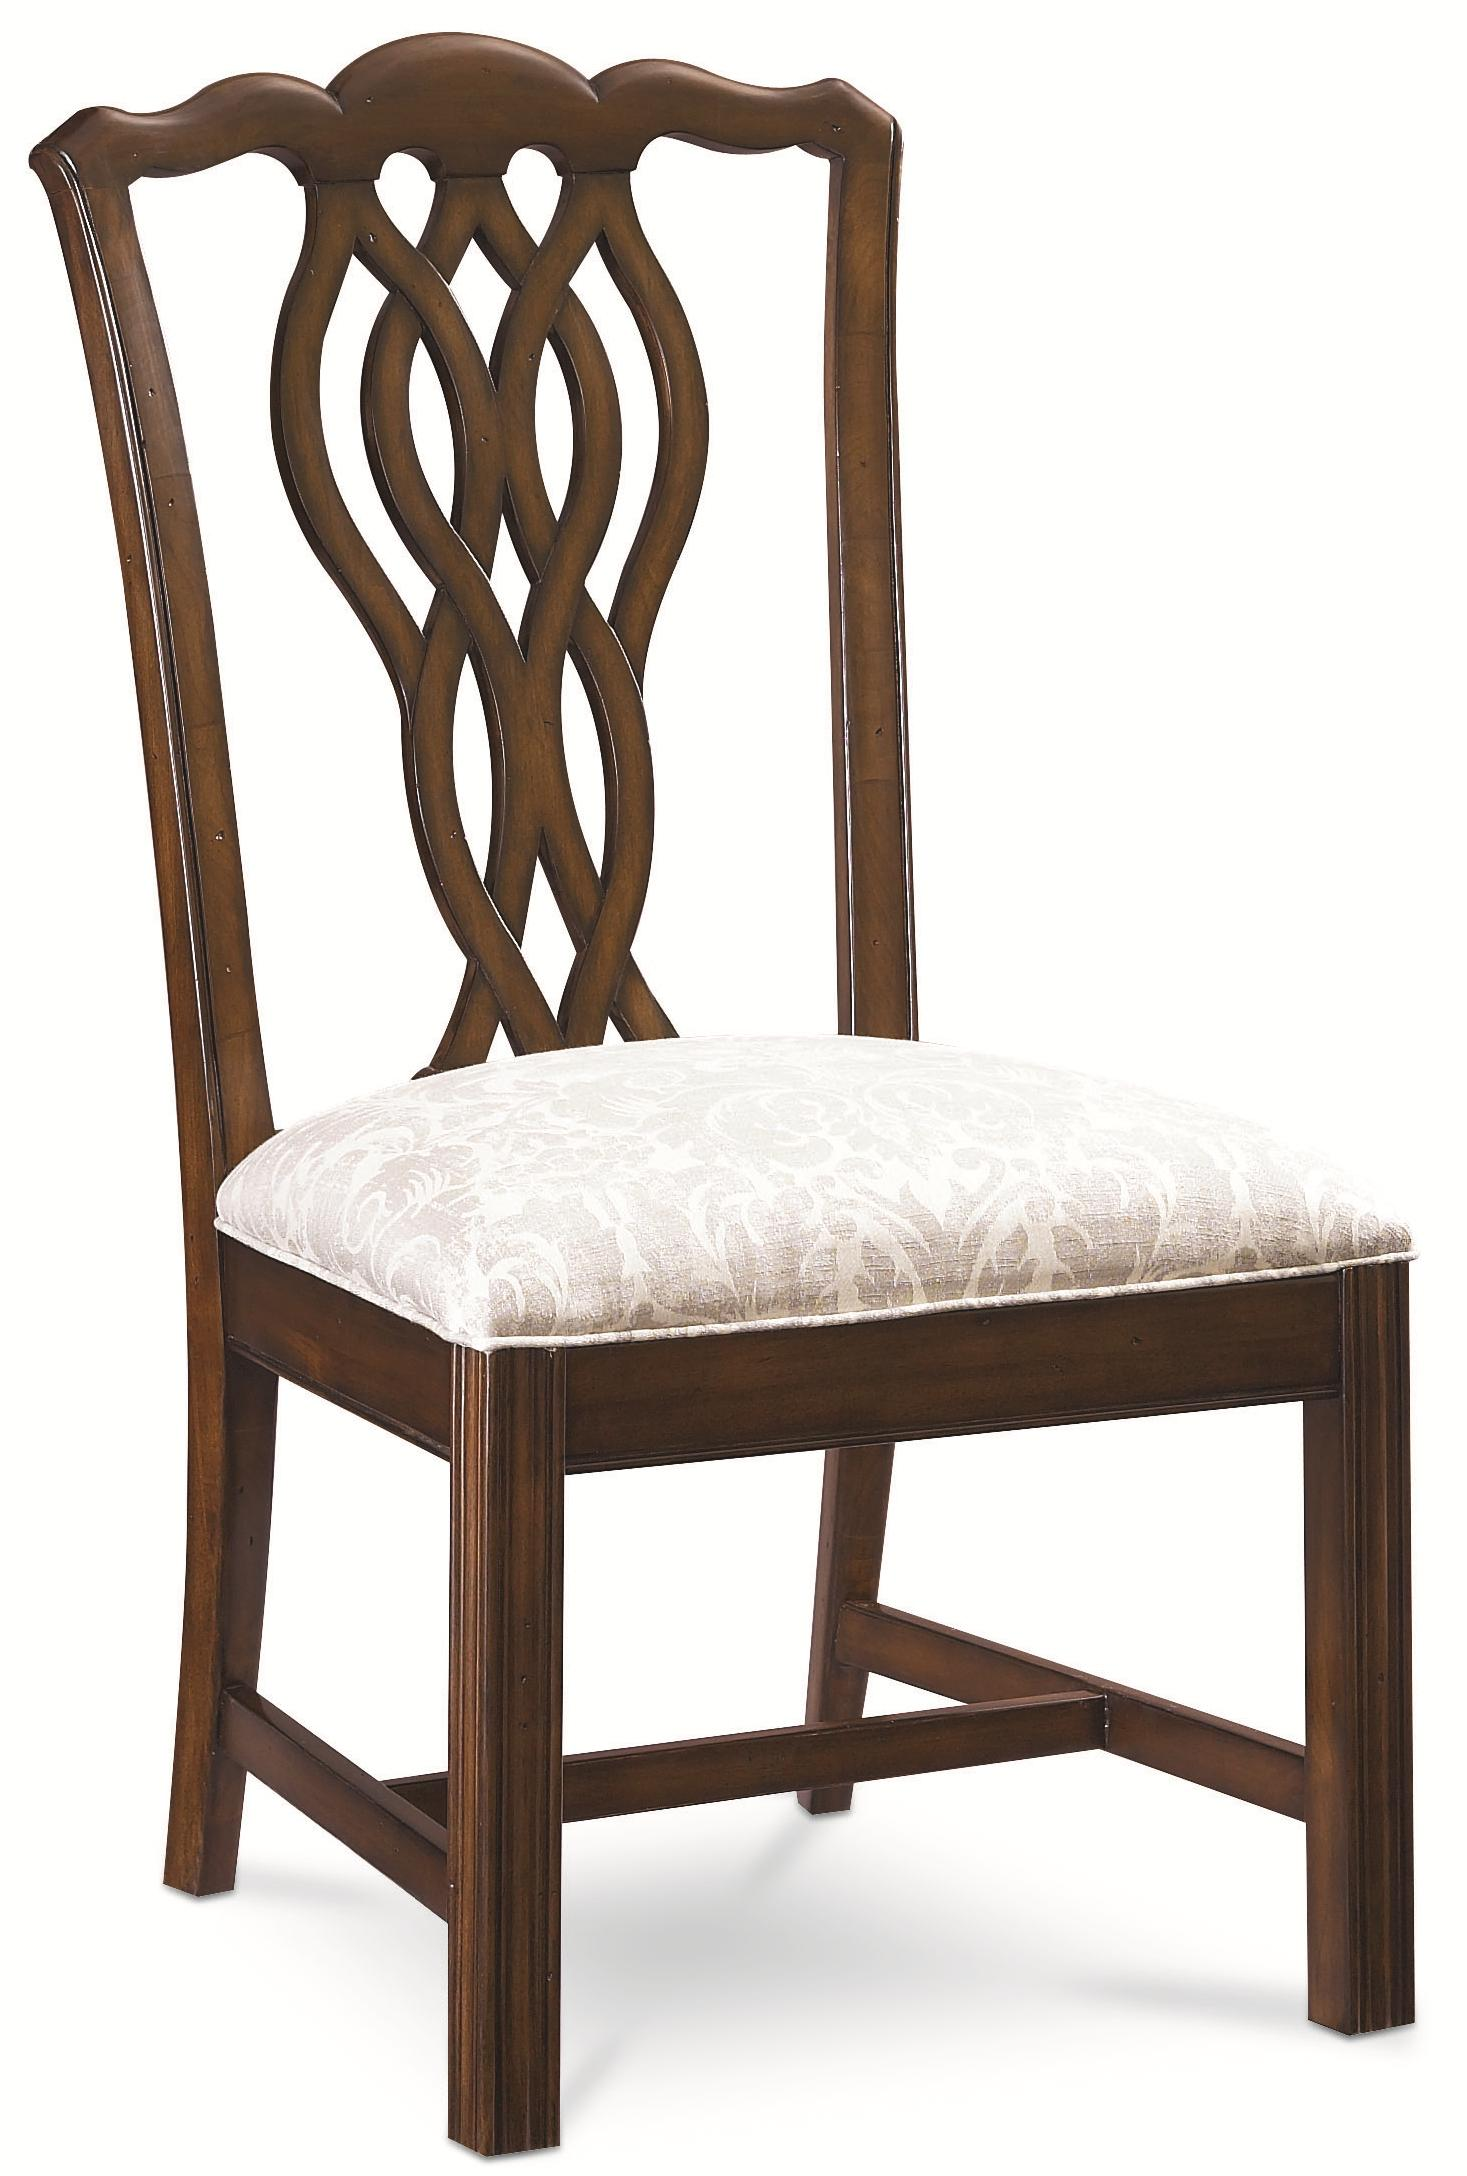 Thomasville® Tate Street Side Chair - Item Number: 46821-821